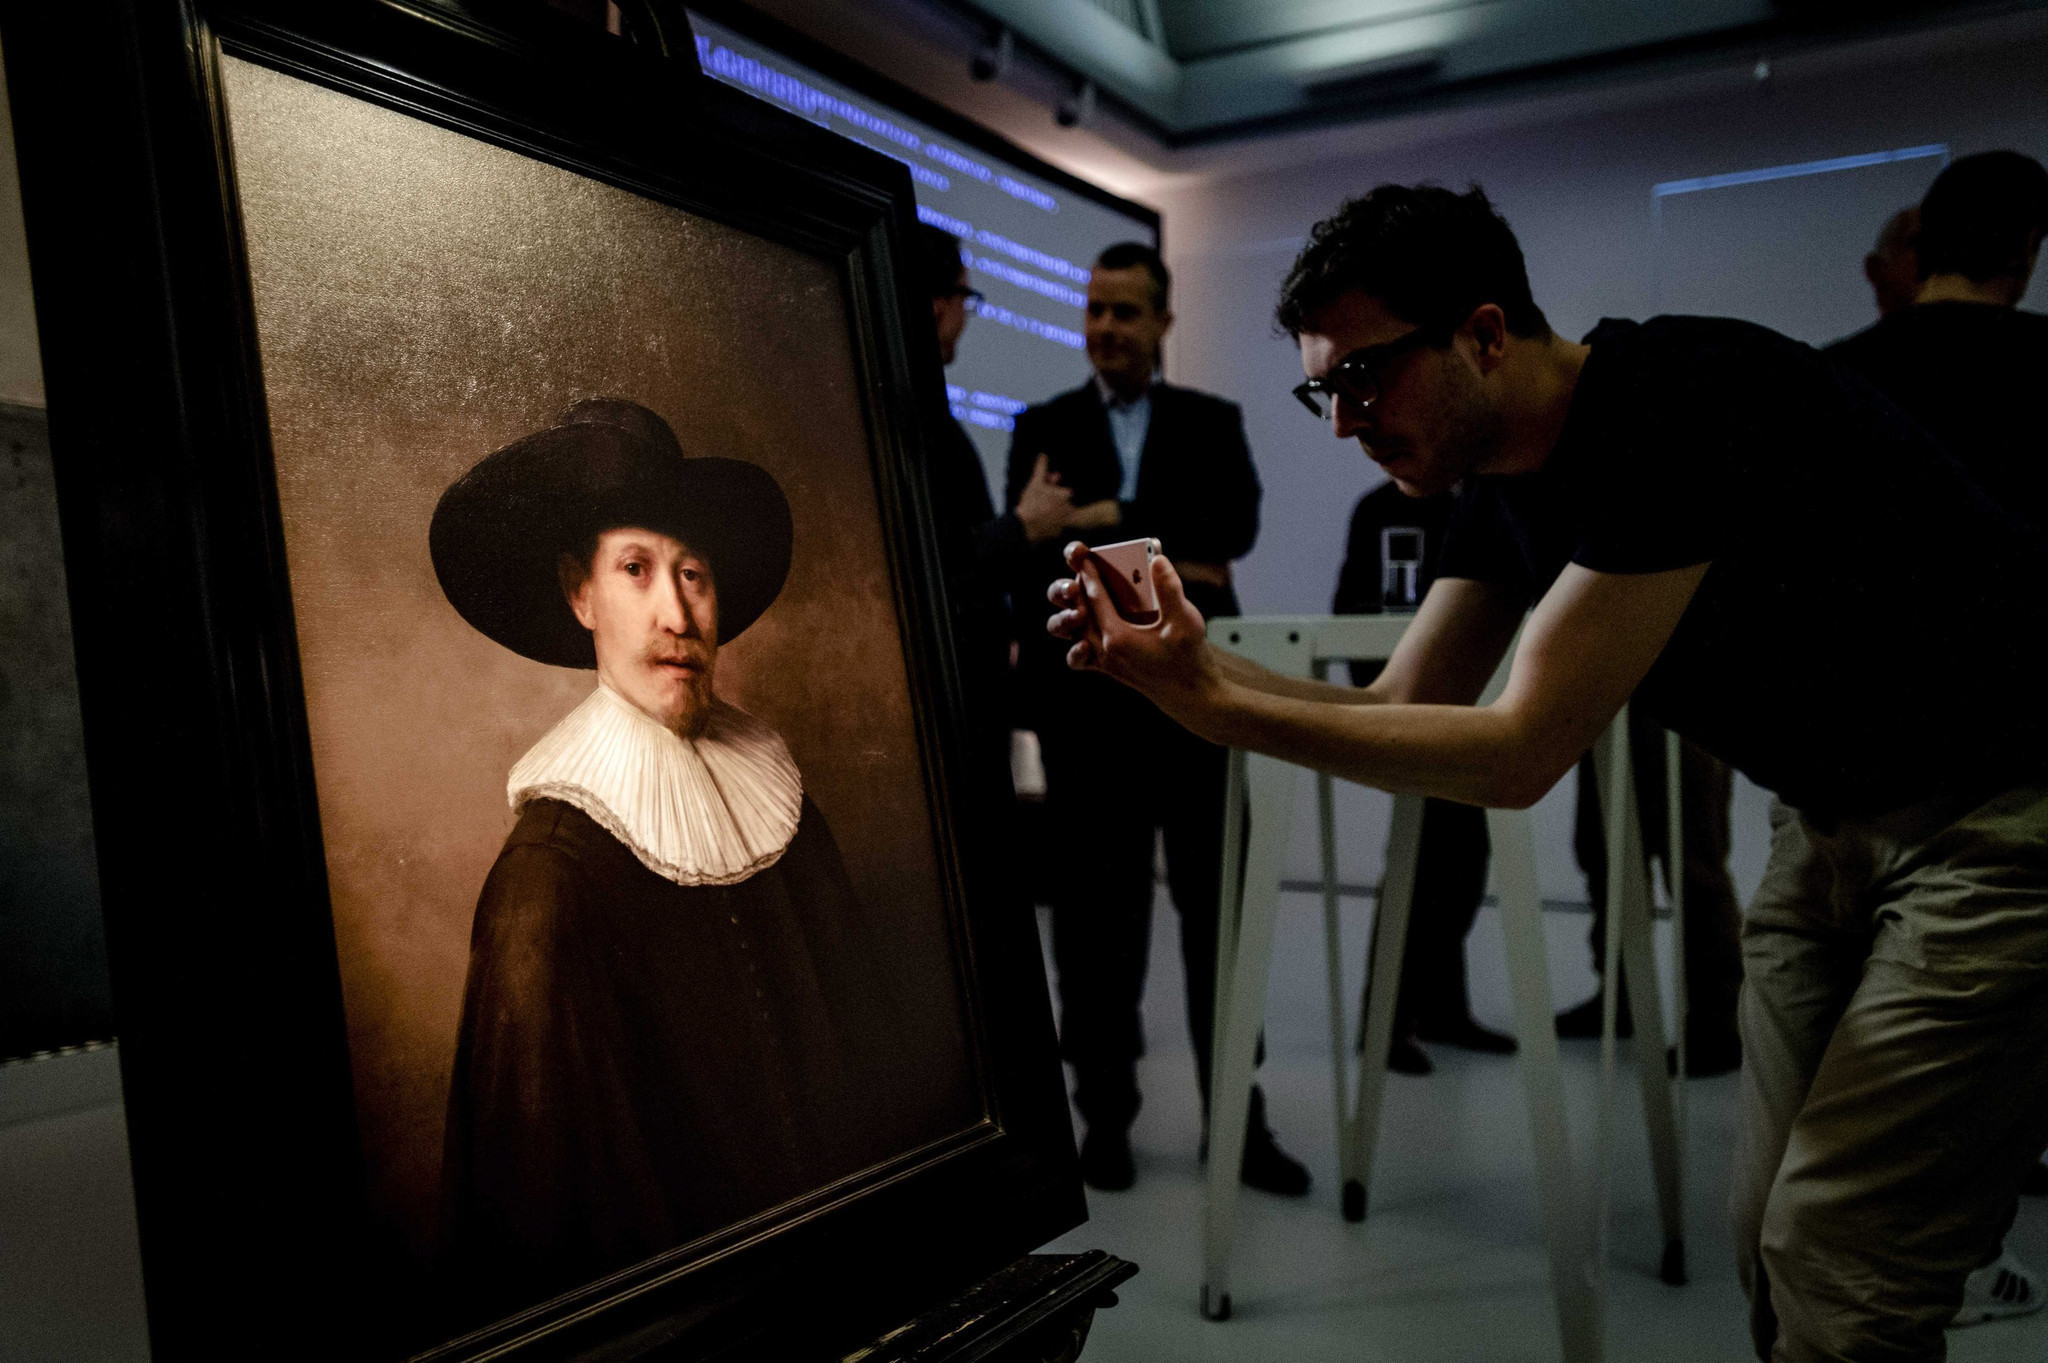 The Next Rembrandt 3D printed